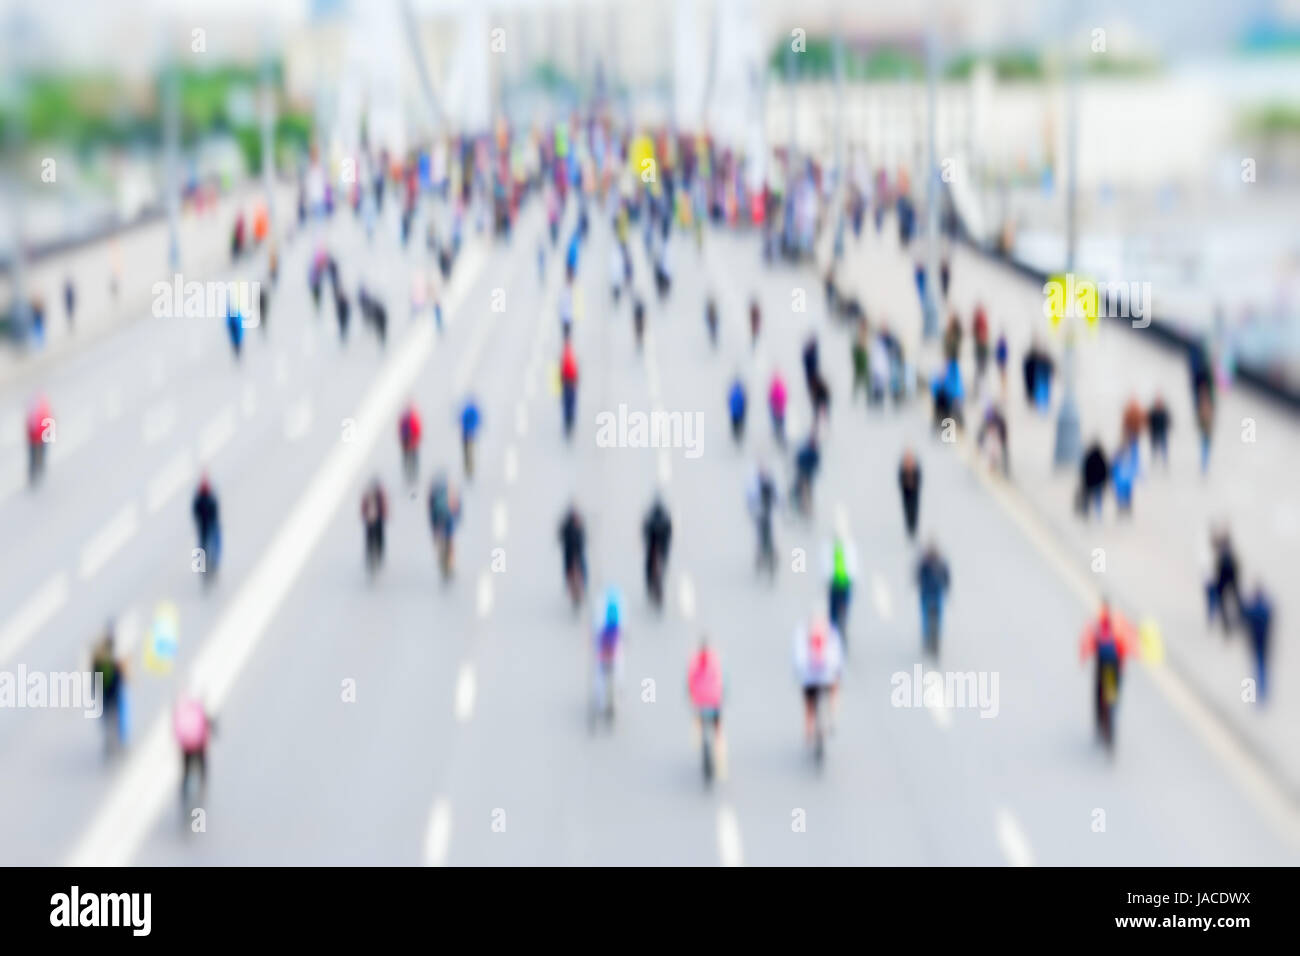 Abstract background of colored group of bicyclists in city center, bike marathon, blur effect, unrecognizable faces. - Stock Image